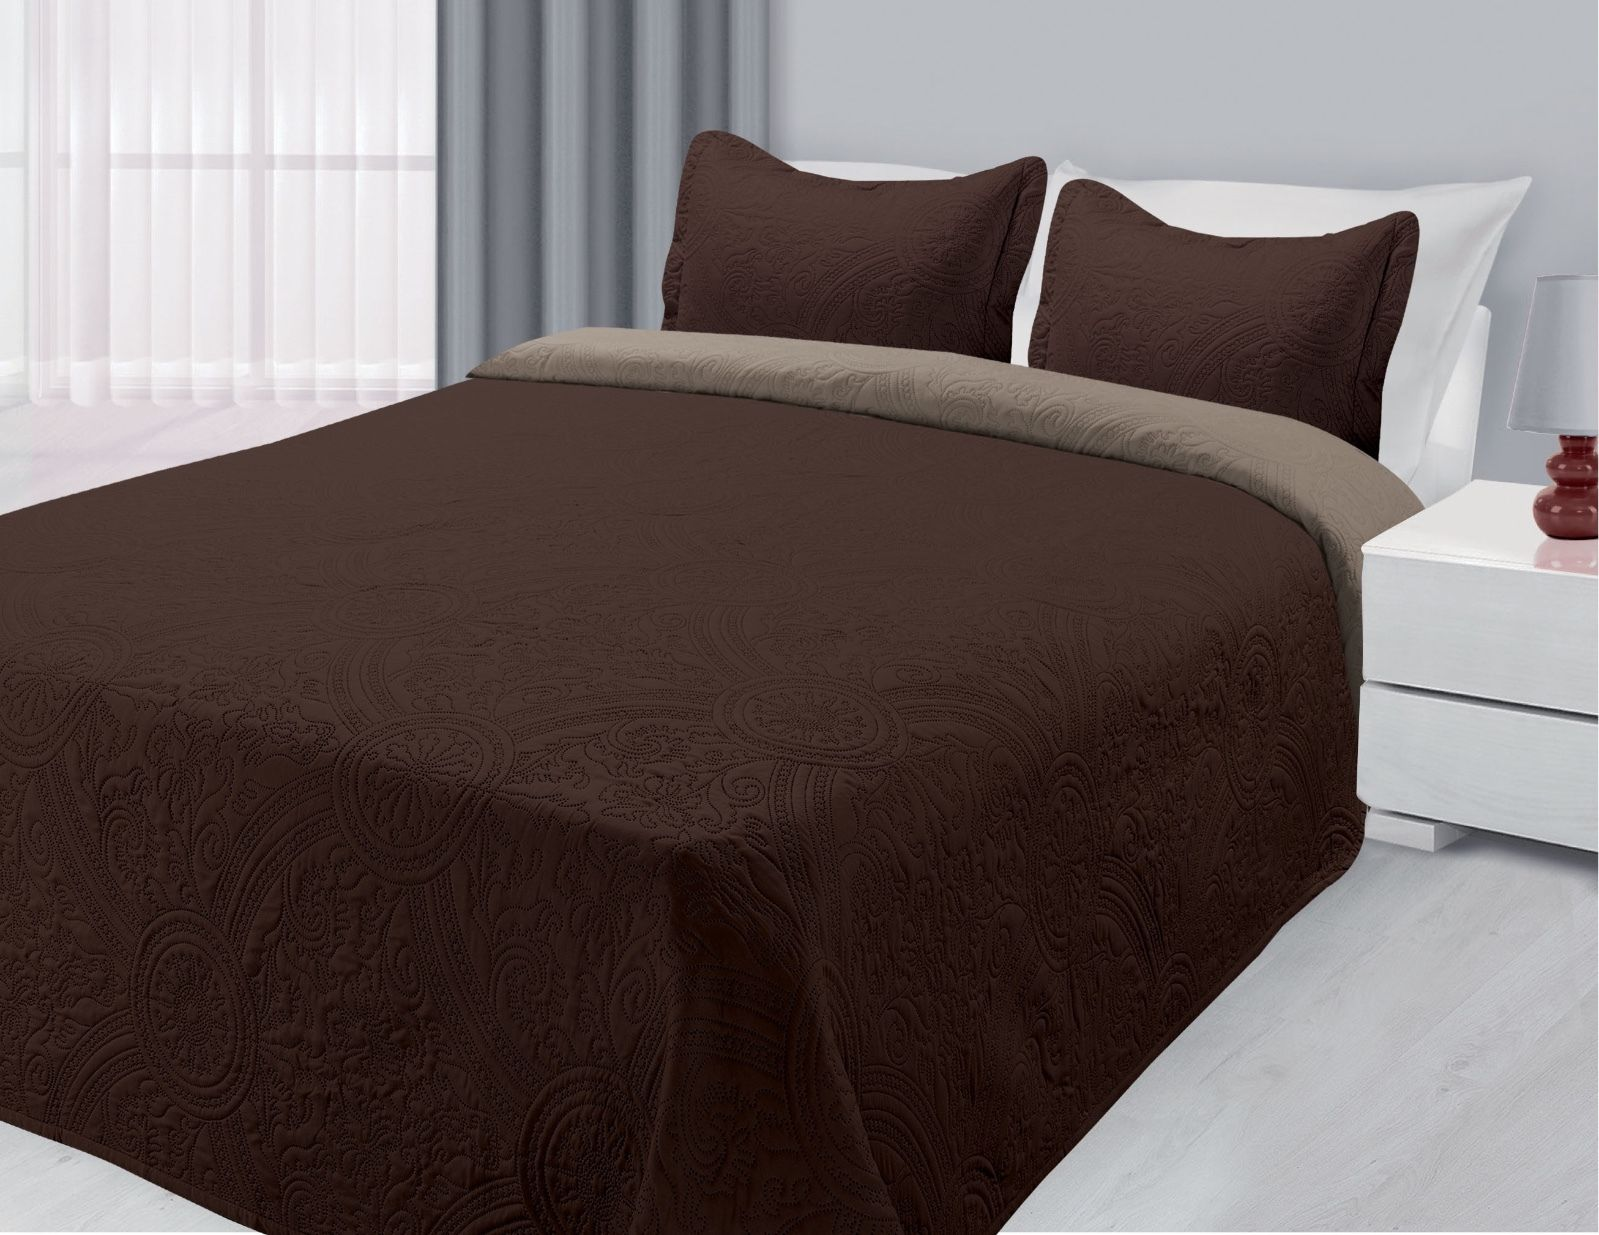 3-Piece Reversible Quilted Bedspread Coverlet Brown & Taupe King Size by